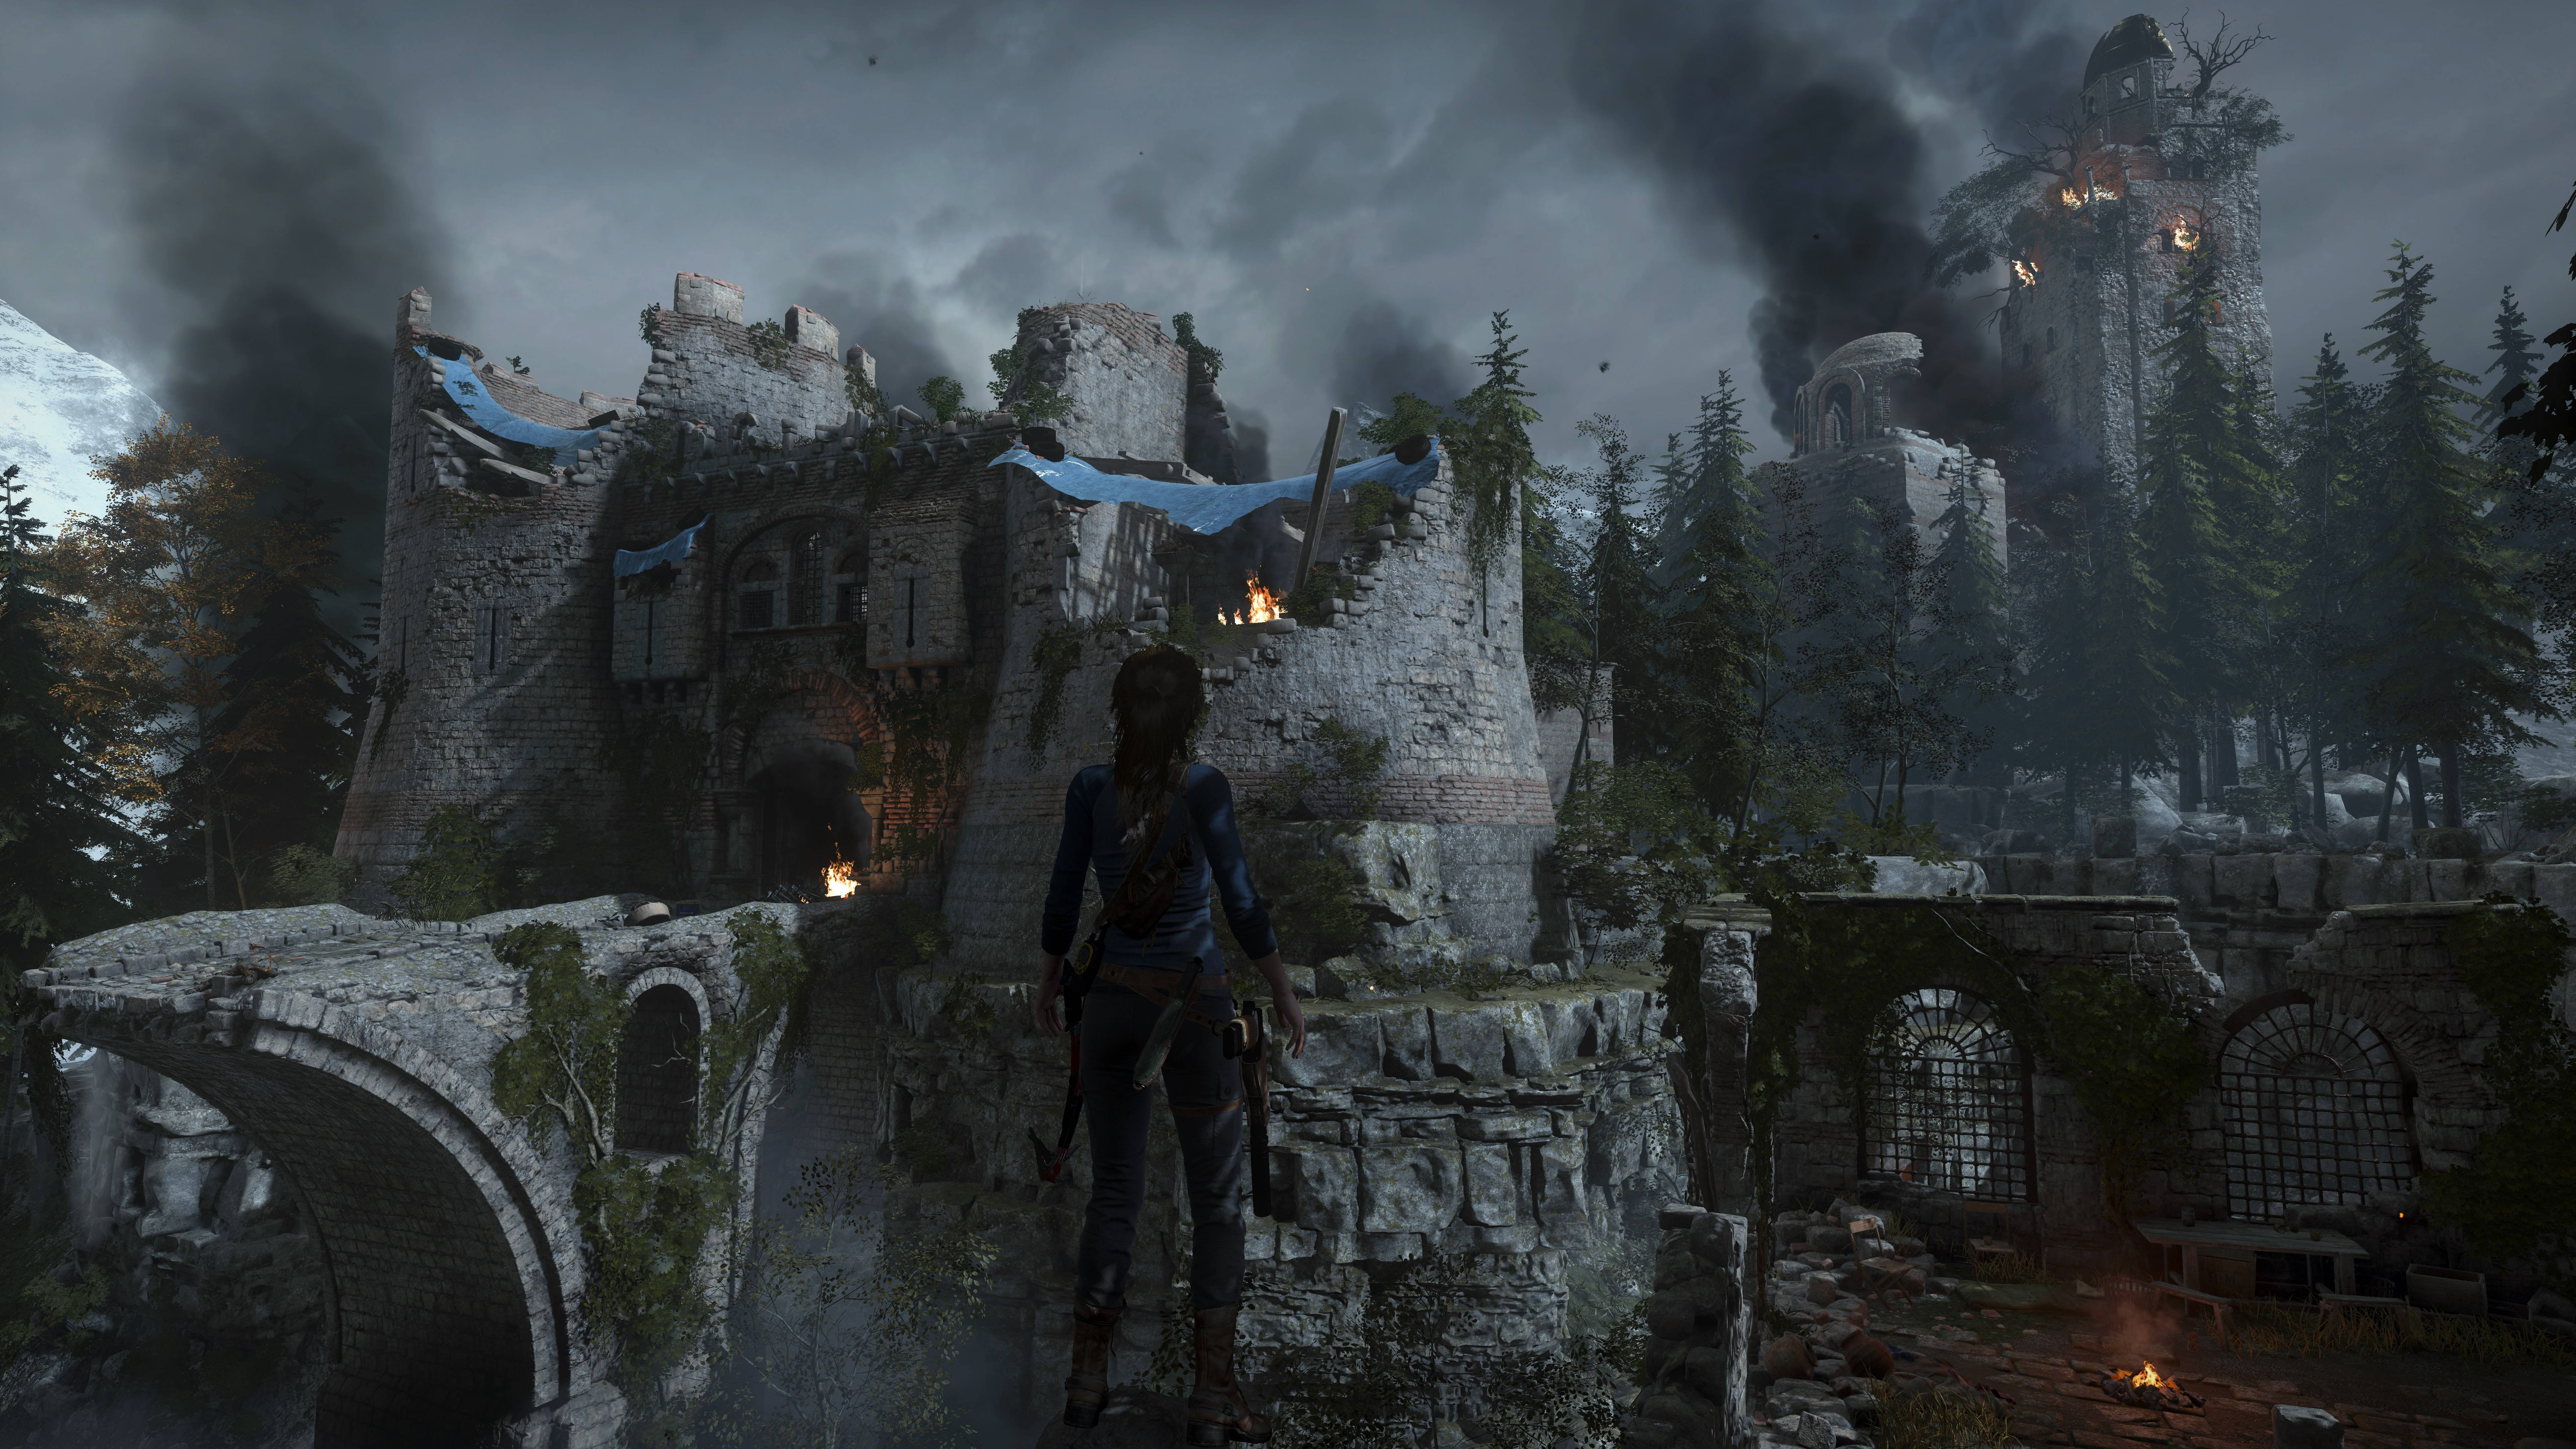 Rise Of The Tomb Raider Wallpaper 4k , HD Wallpaper & Backgrounds